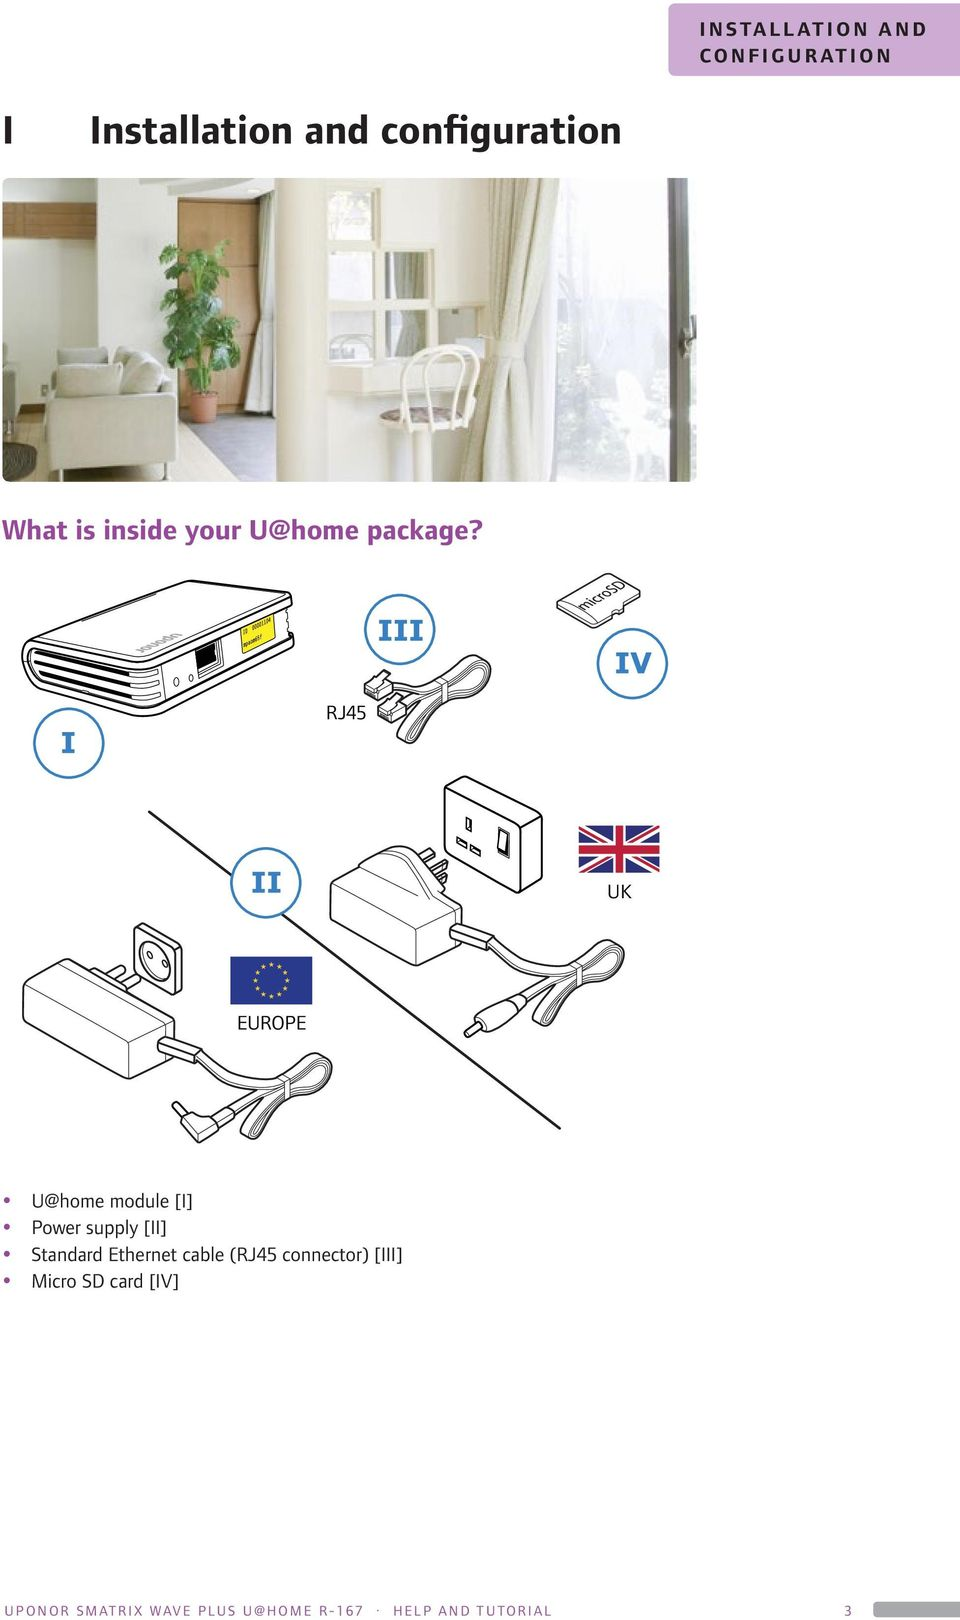 RJ45 UK EUROPE U@home module [I] Power supply [II] Standard Ethernet